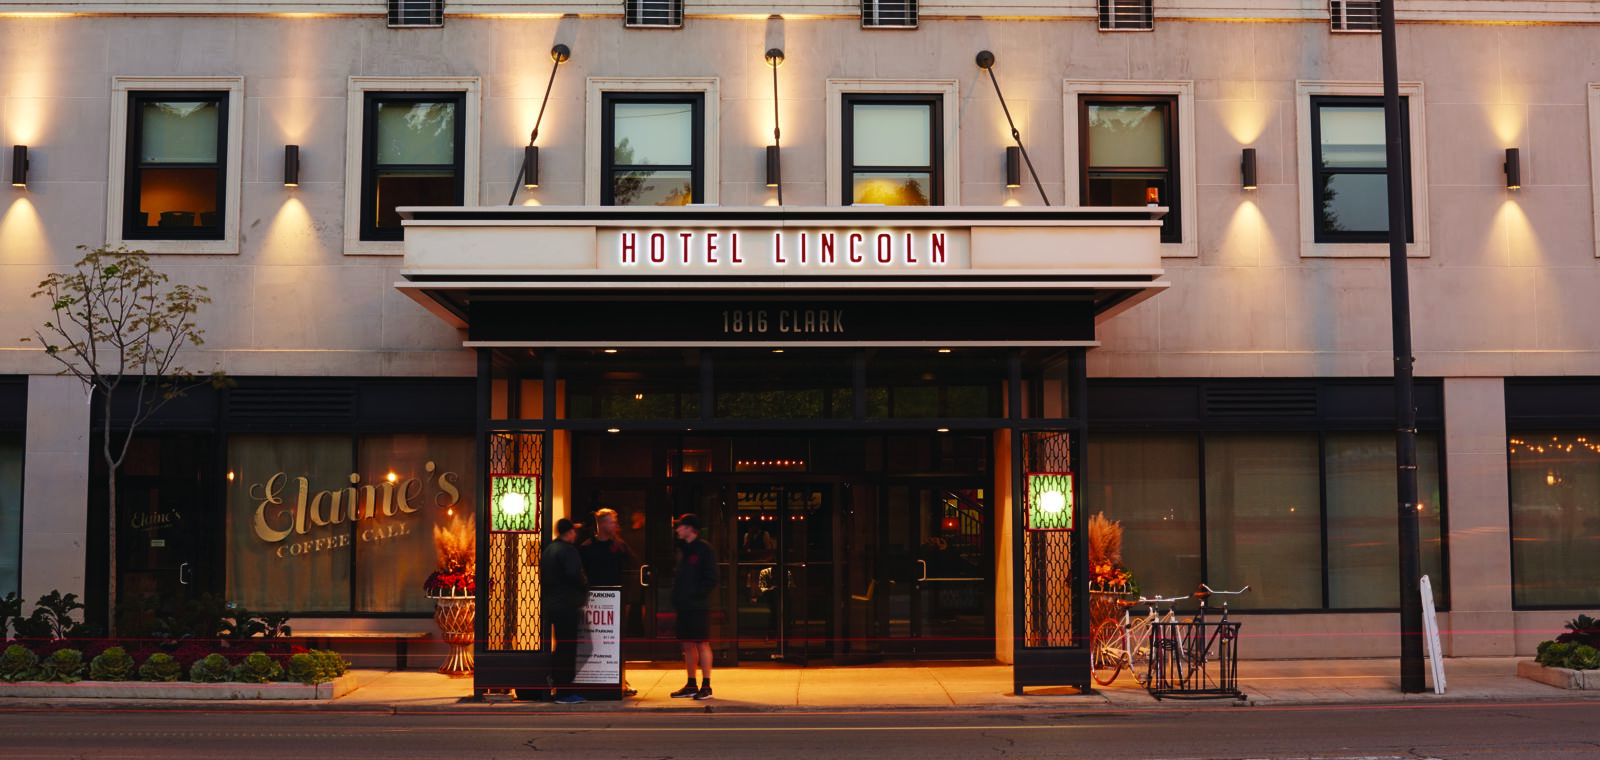 Boutique Hotels Lincoln Park Chicago Near Wrigley Field Hotel Lincoln